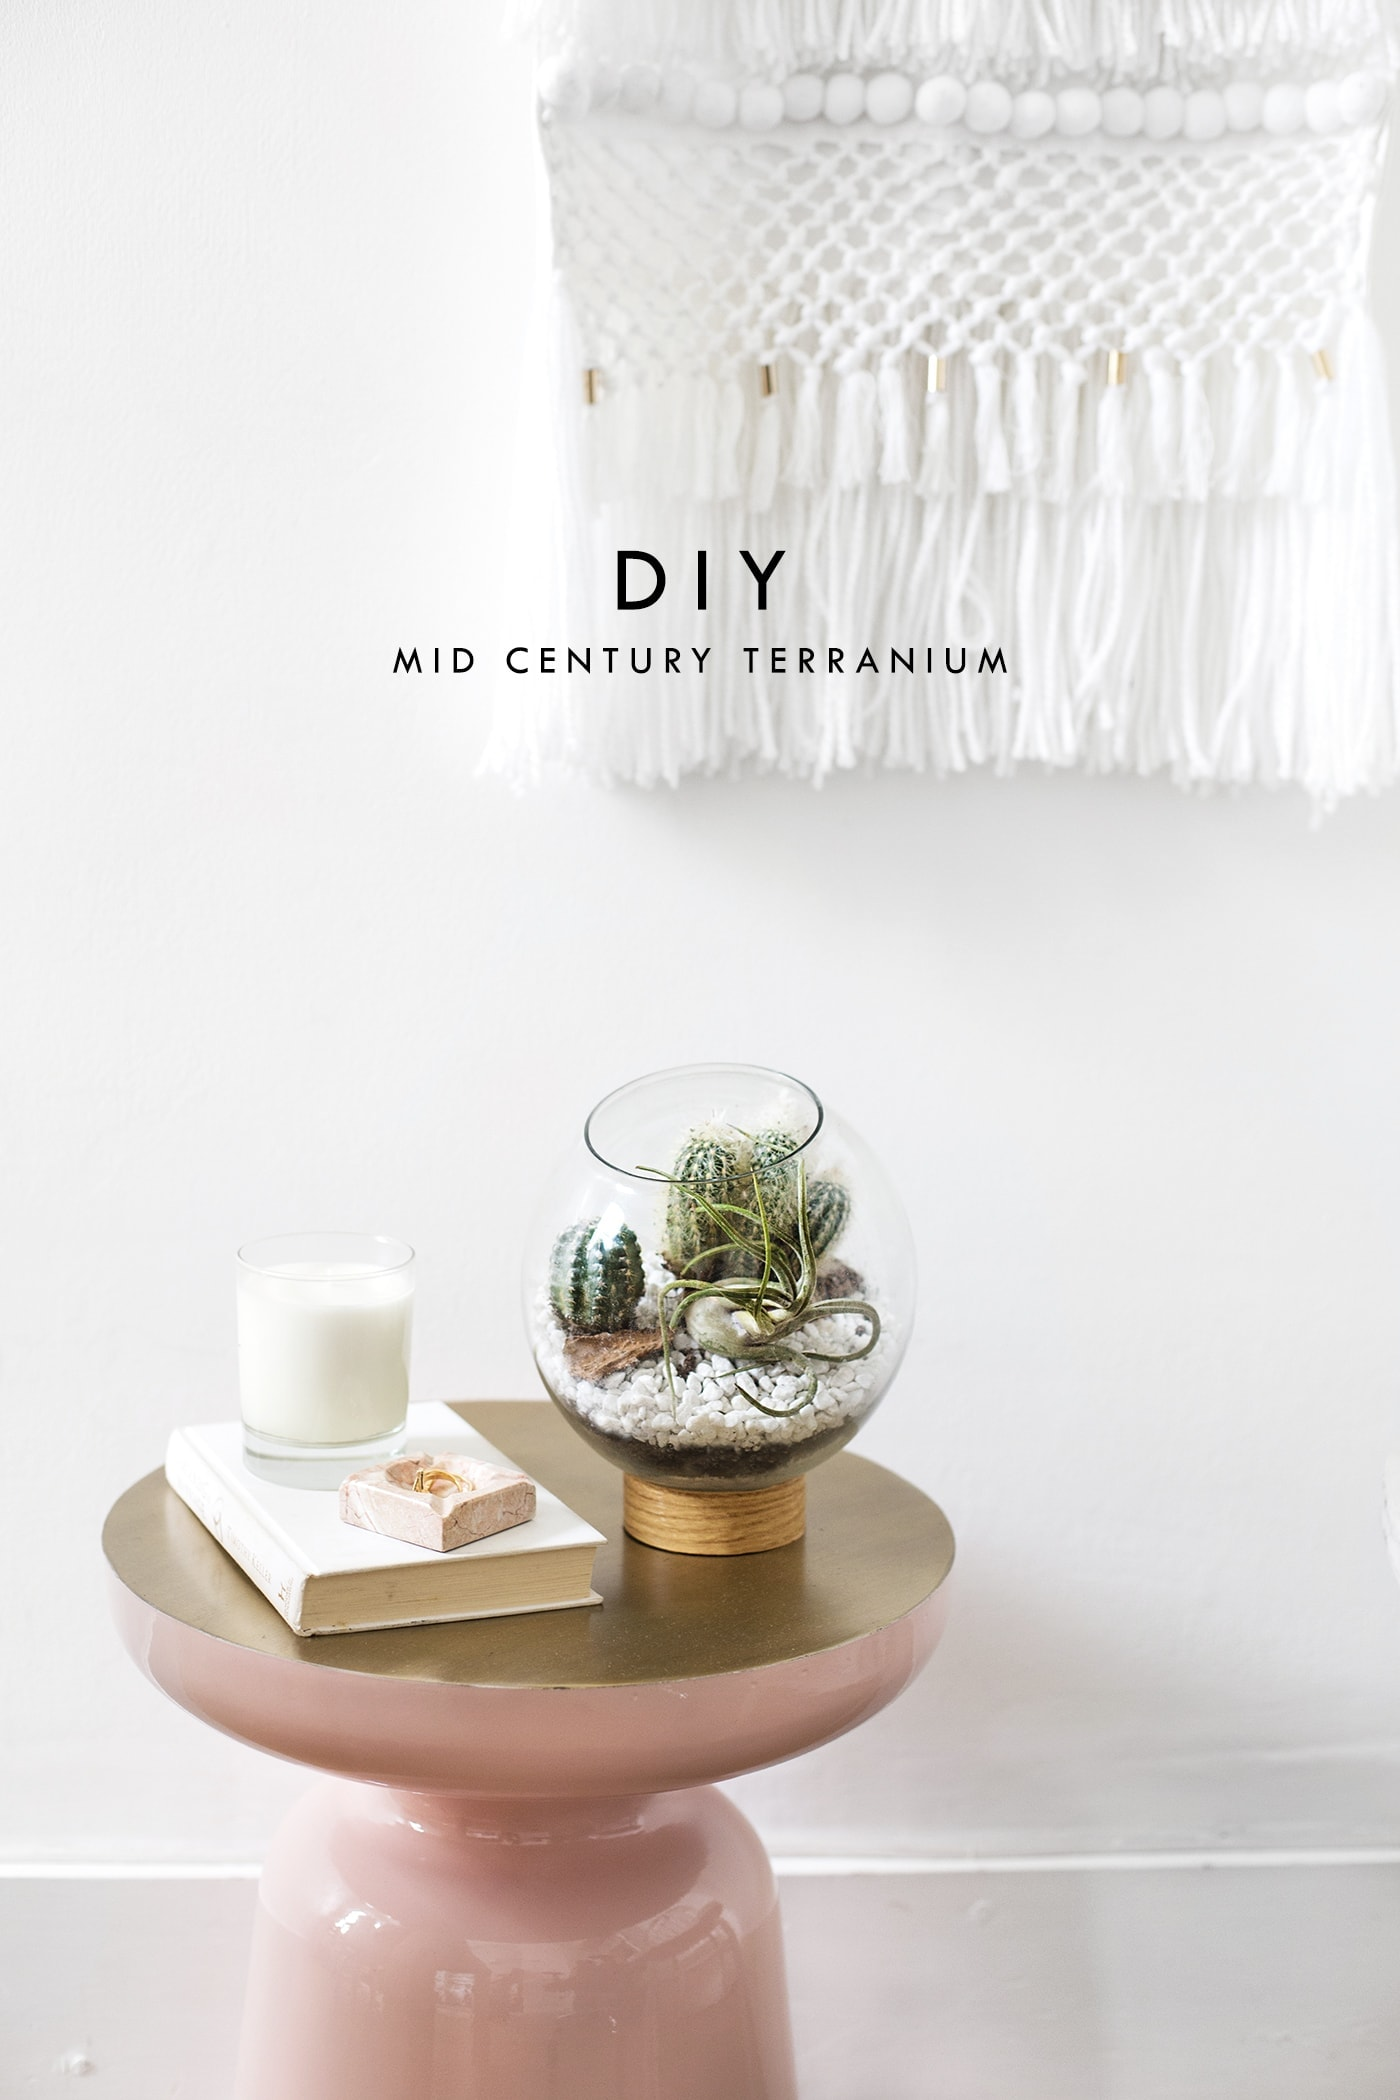 diy-mid-century-terranium-tutorial-easy-crafts-interior-ideas